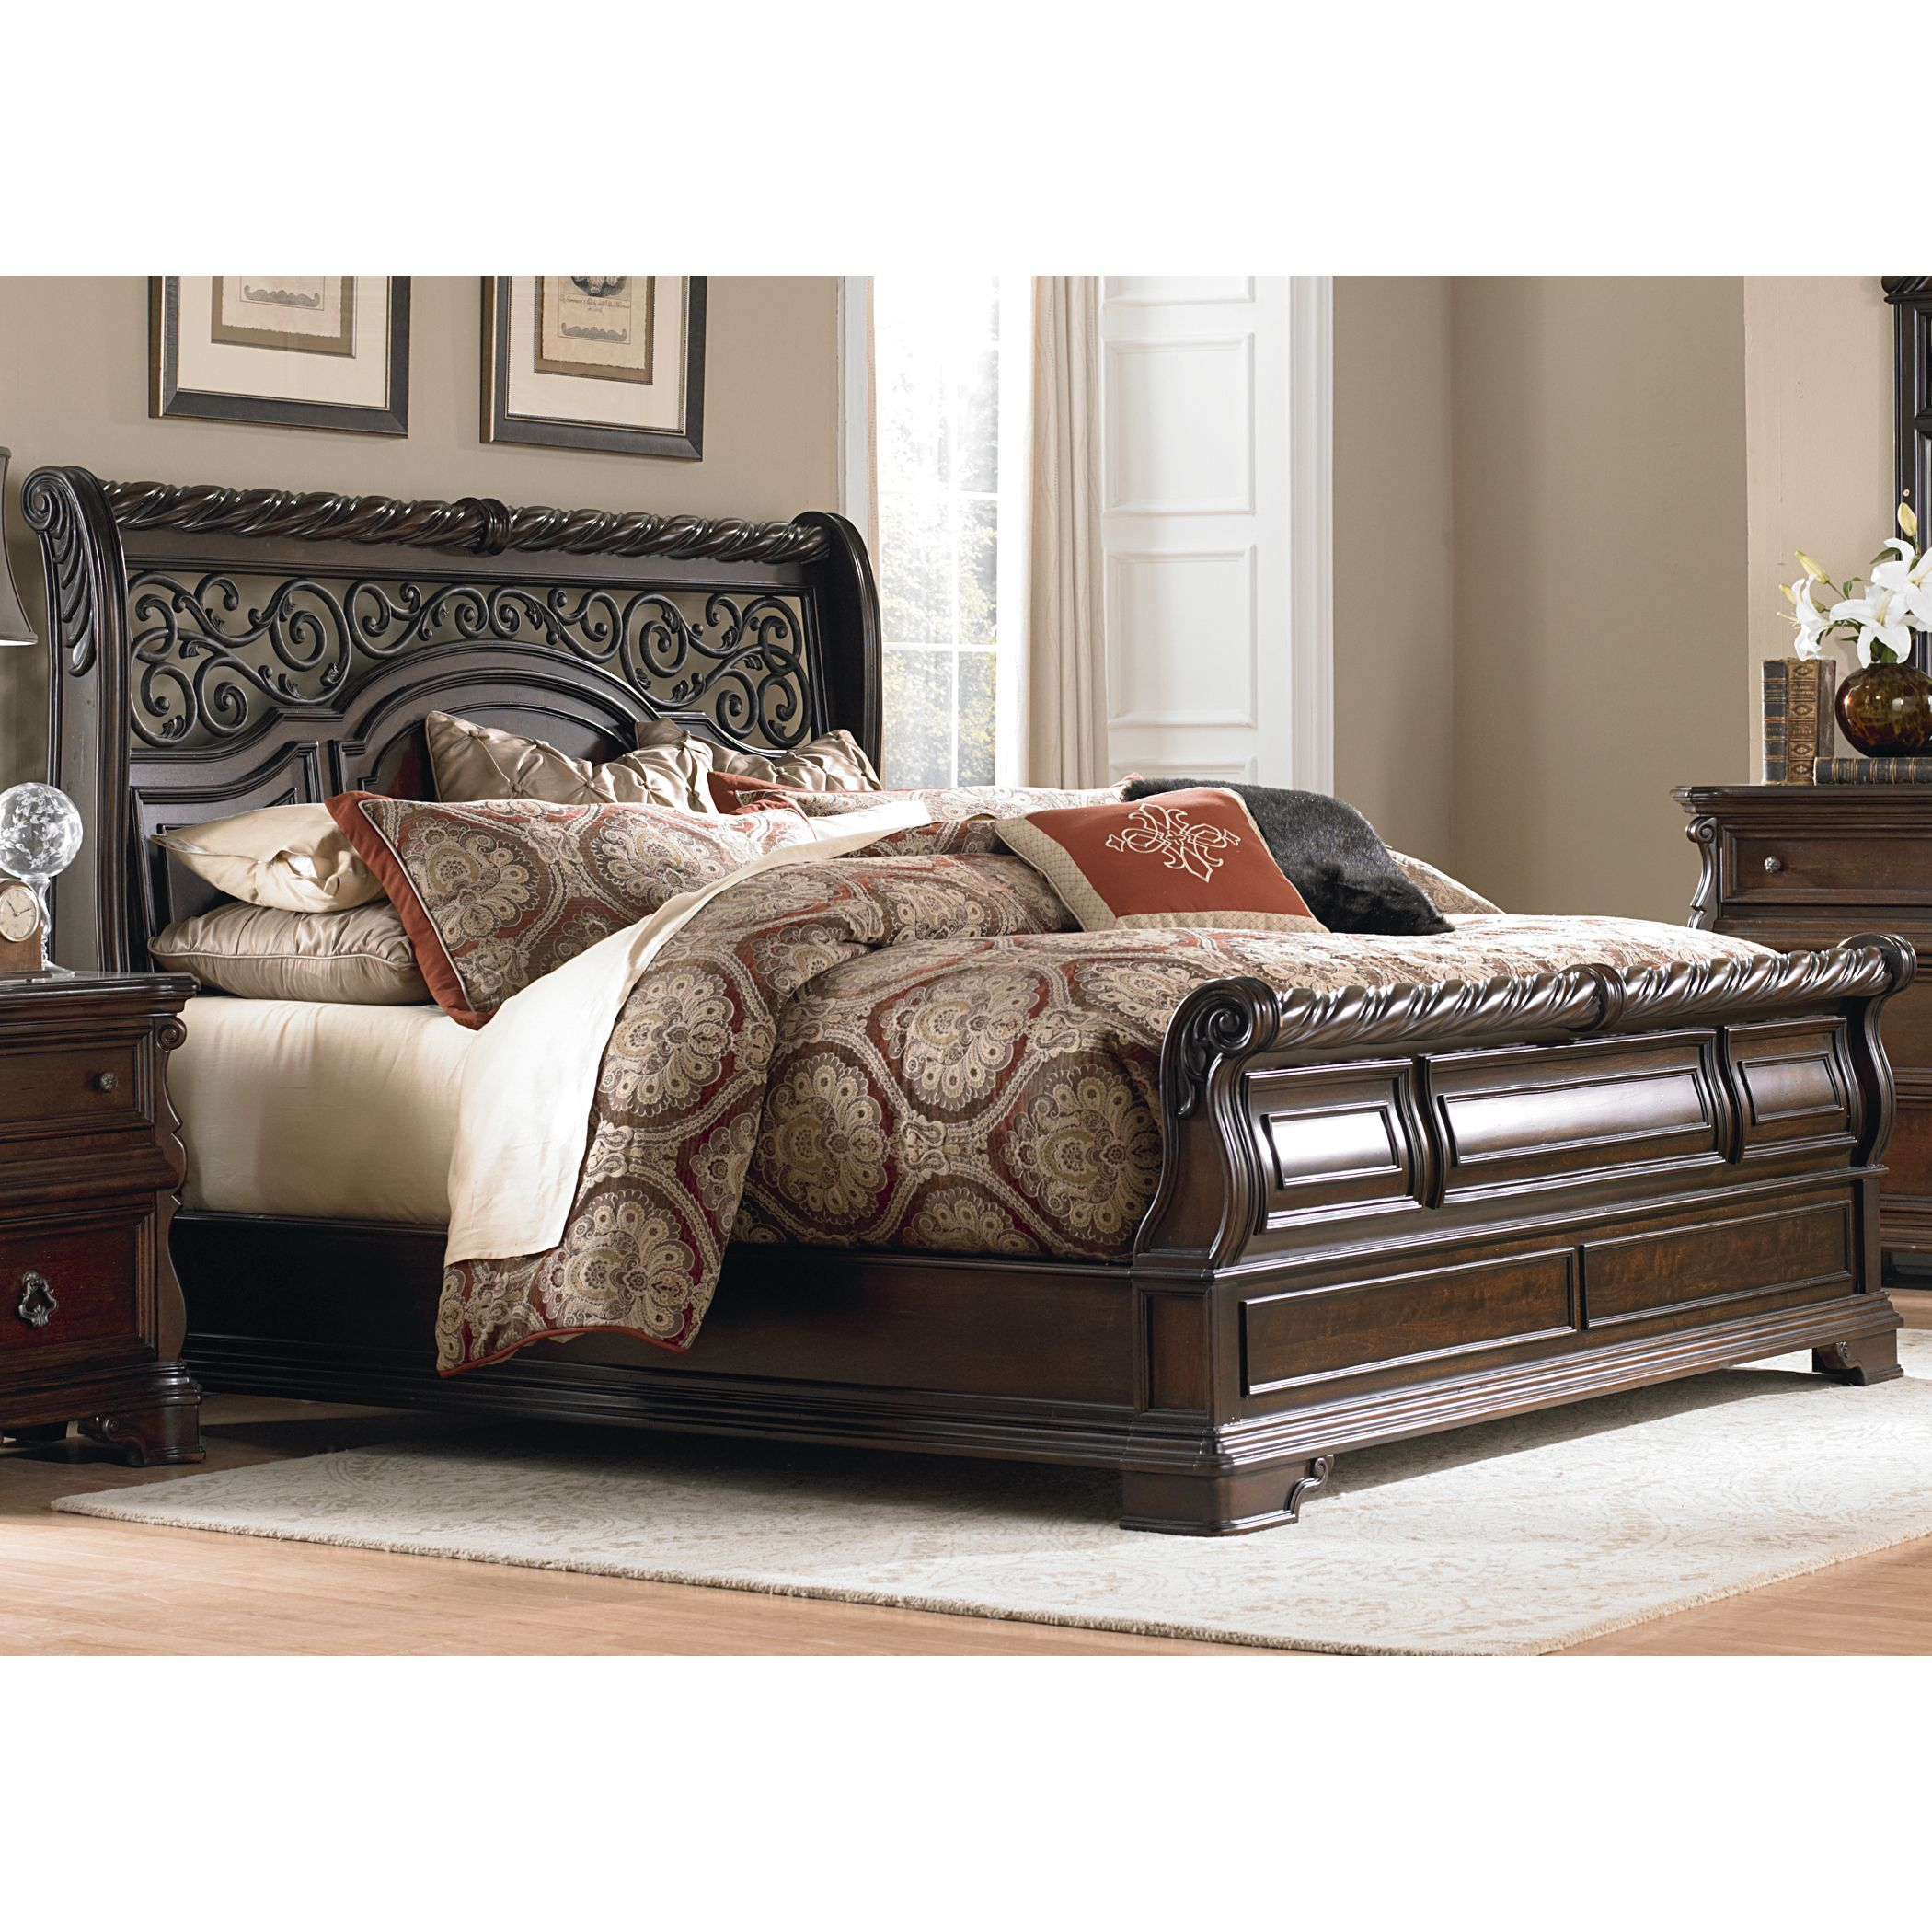 furniture with number liberty dresser drawer item bayside transitional products bedroom